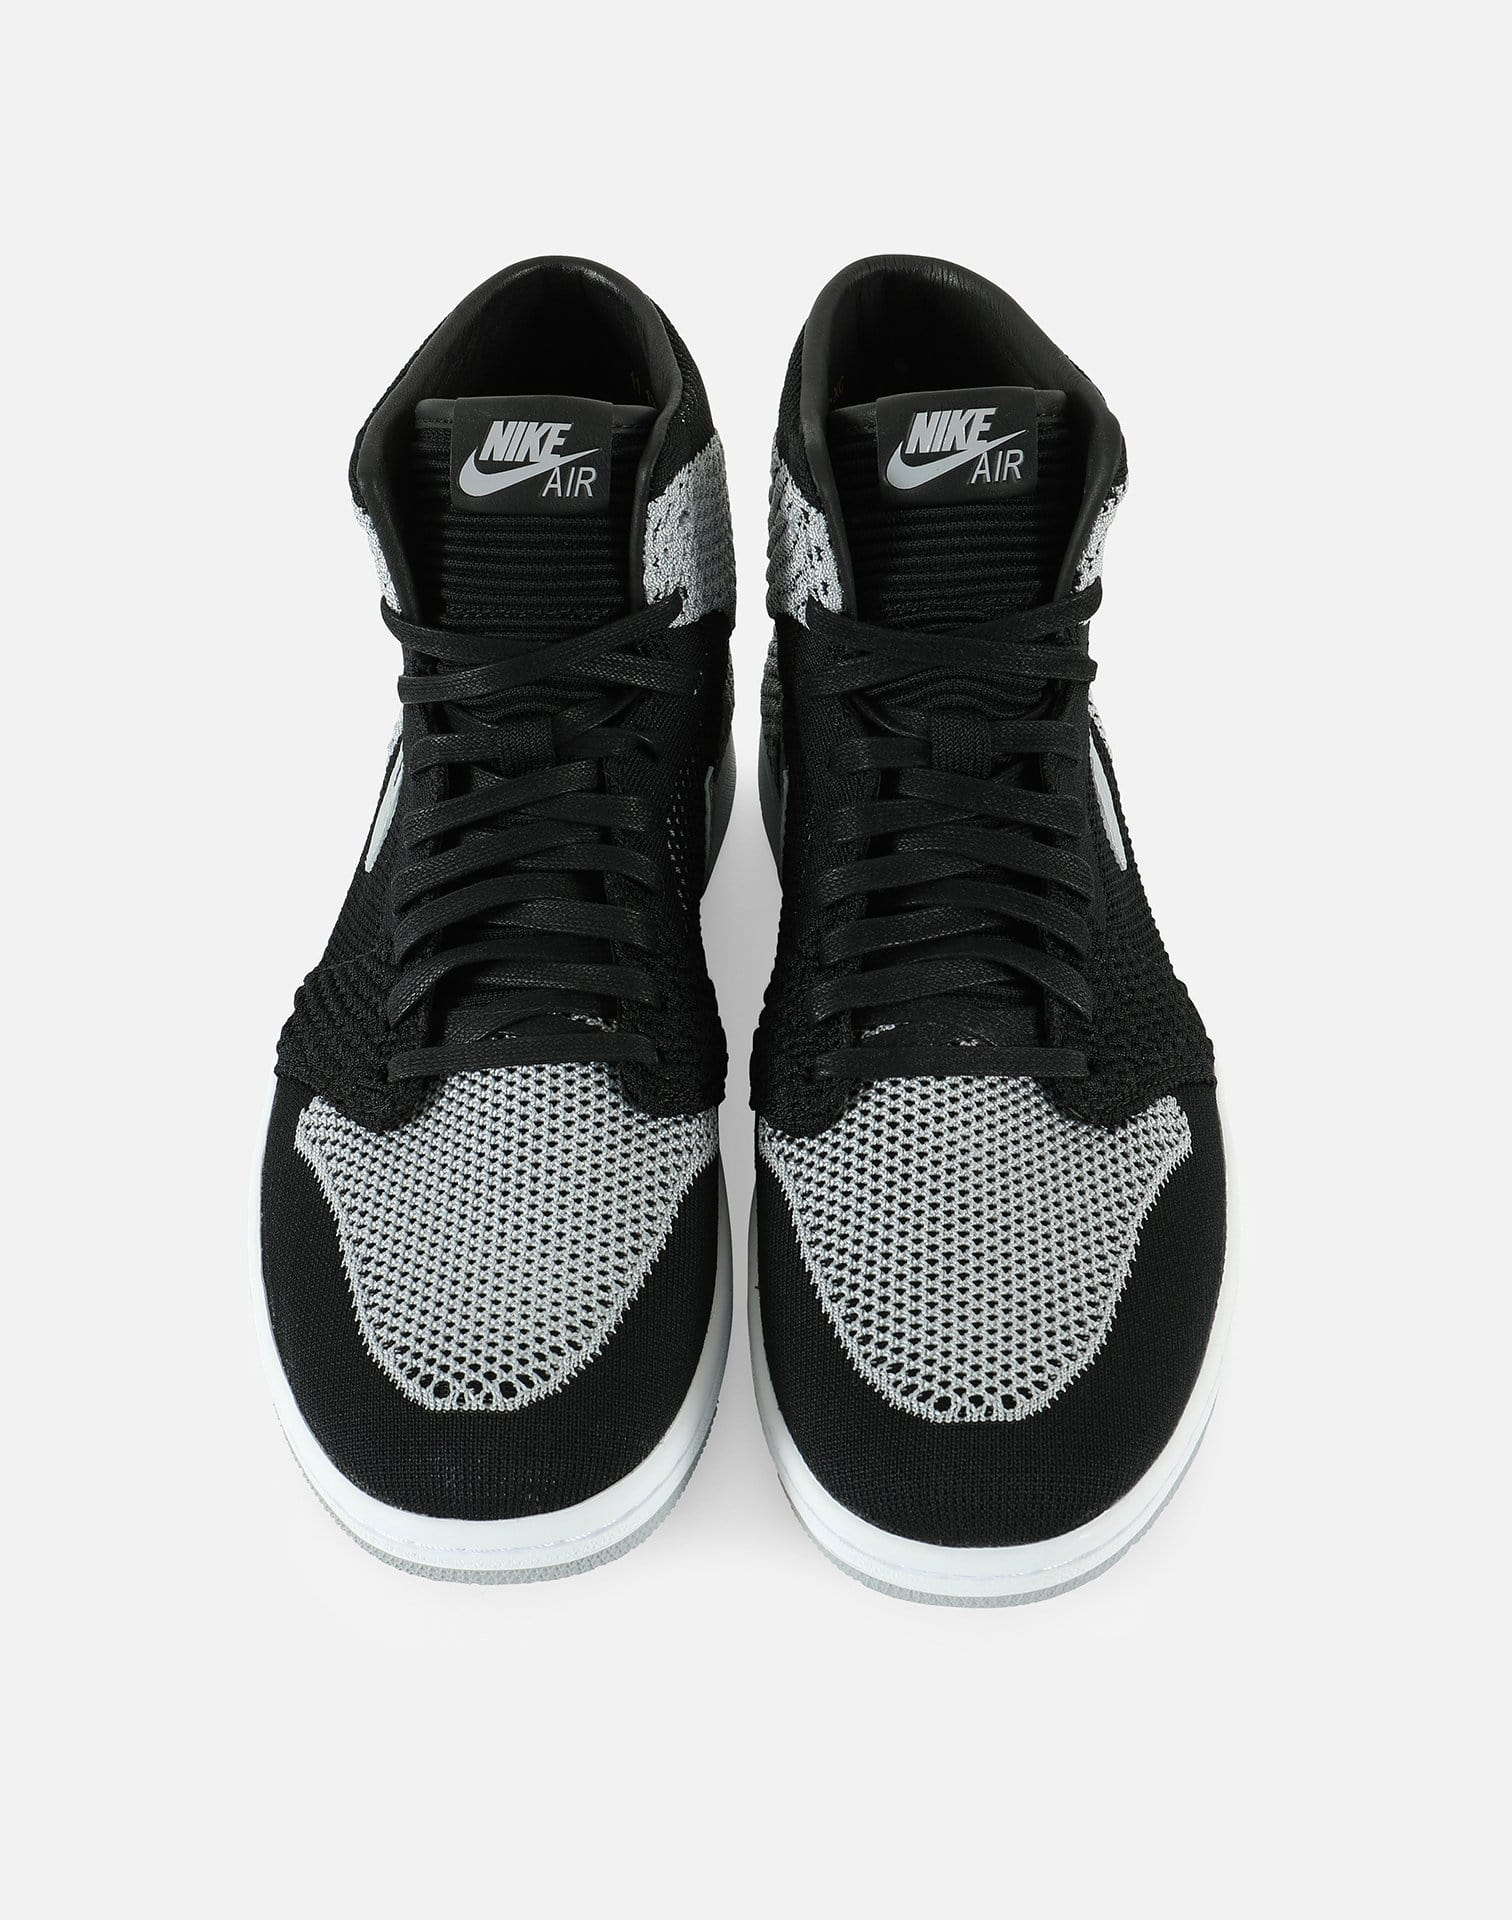 Jordan Air Jordan Retro 1 High Flyknit 'Shadow'